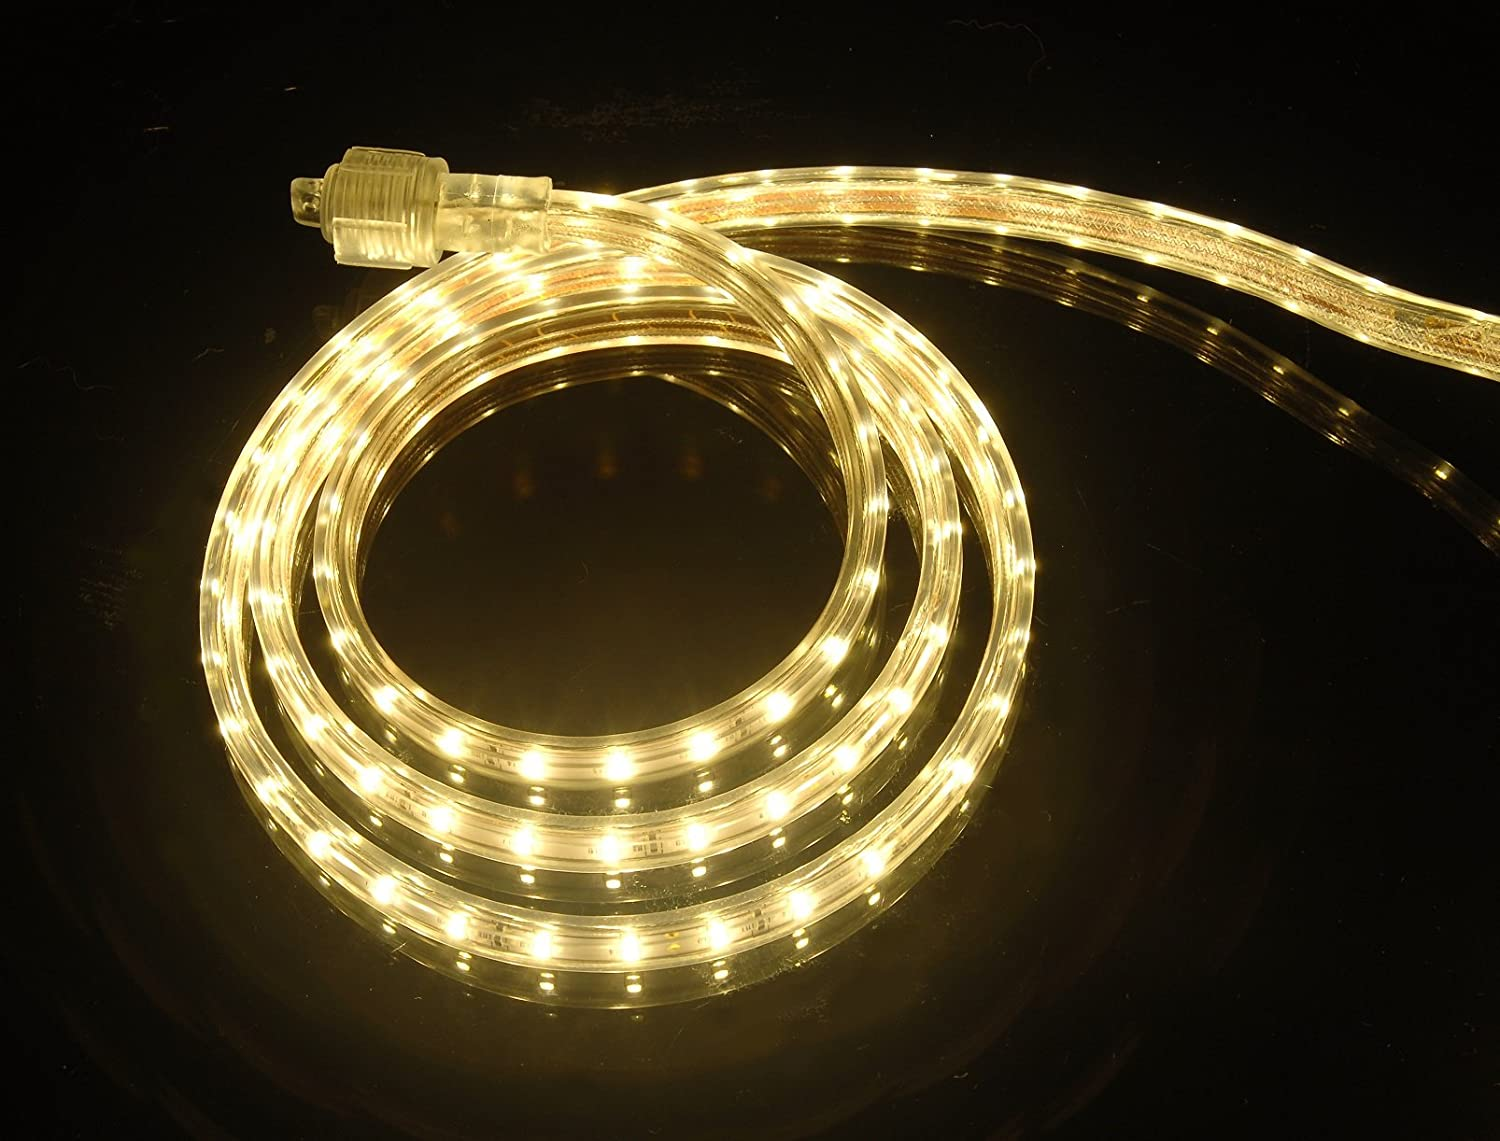 CBConcept UL Listed, 40 Feet, 4300 Lumen, 3000K Warm White, Dimmable, 110-120V AC Flexible Flat LED Strip Rope Light, 720 Units 3528 SMD LEDs, Indoor Outdoor Use, Accessories Included, Ready to use